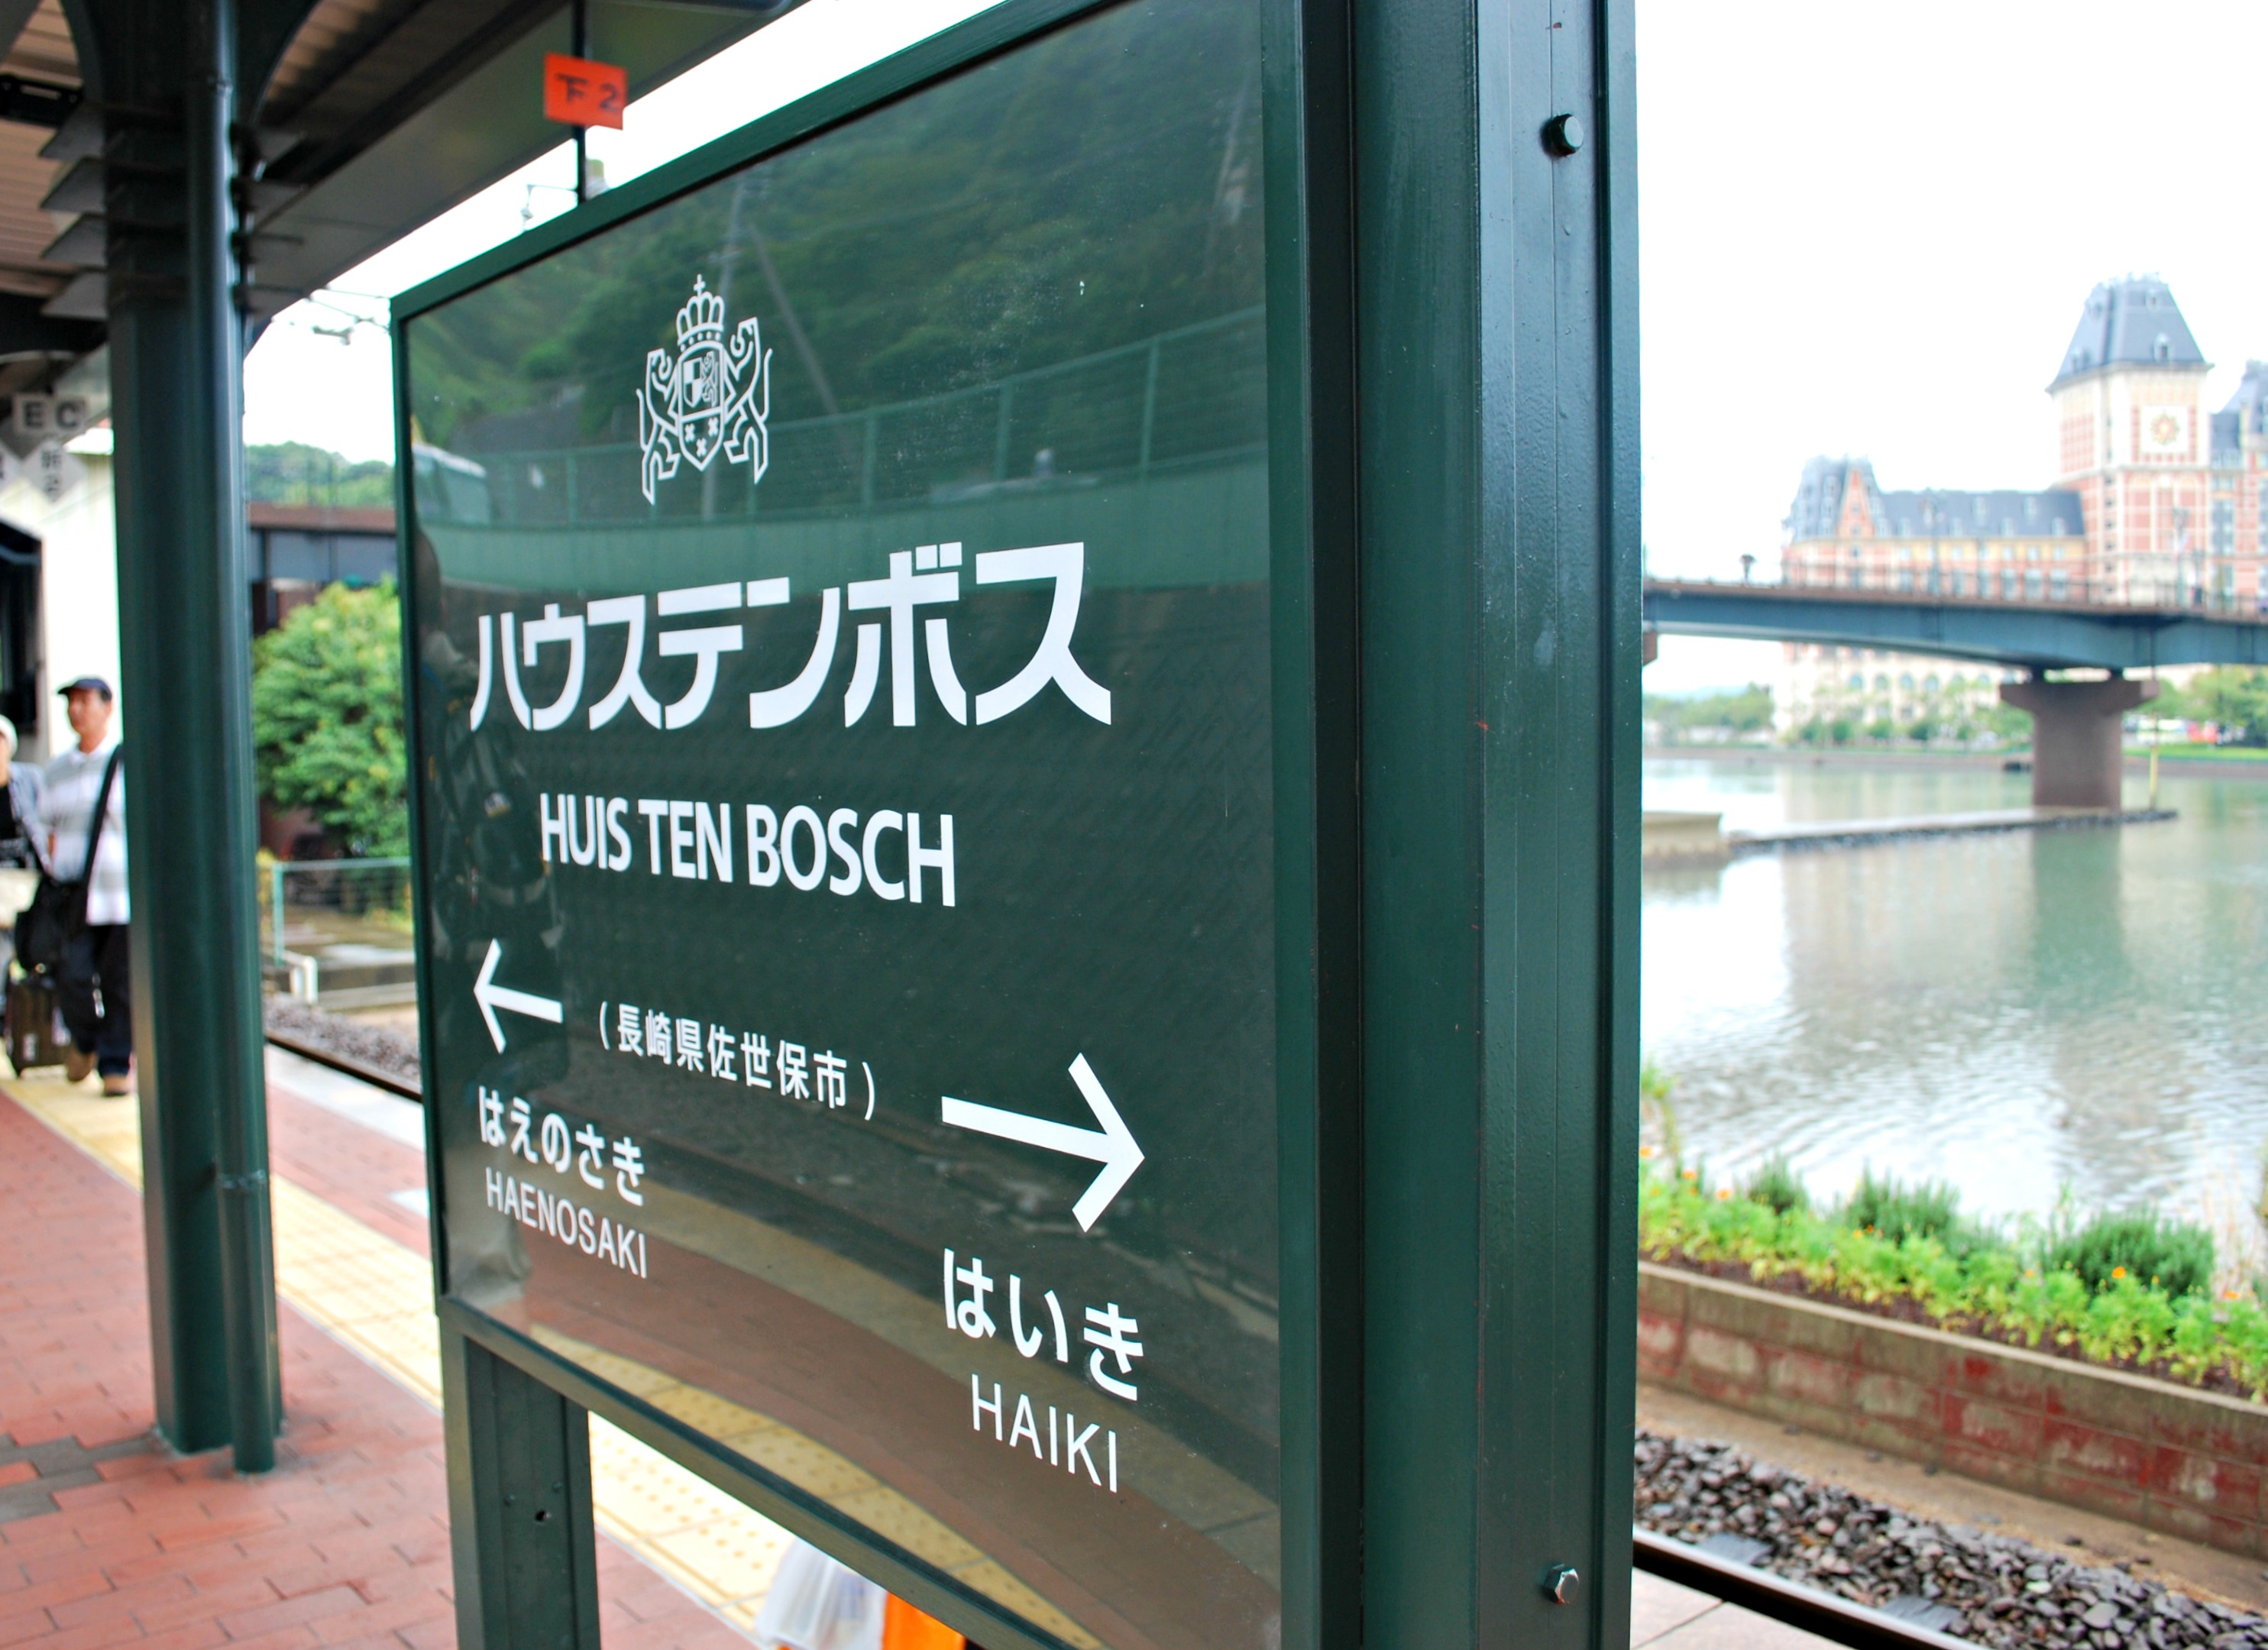 Japan explore the netherlands come to japan an for Huis ten bosch ticket